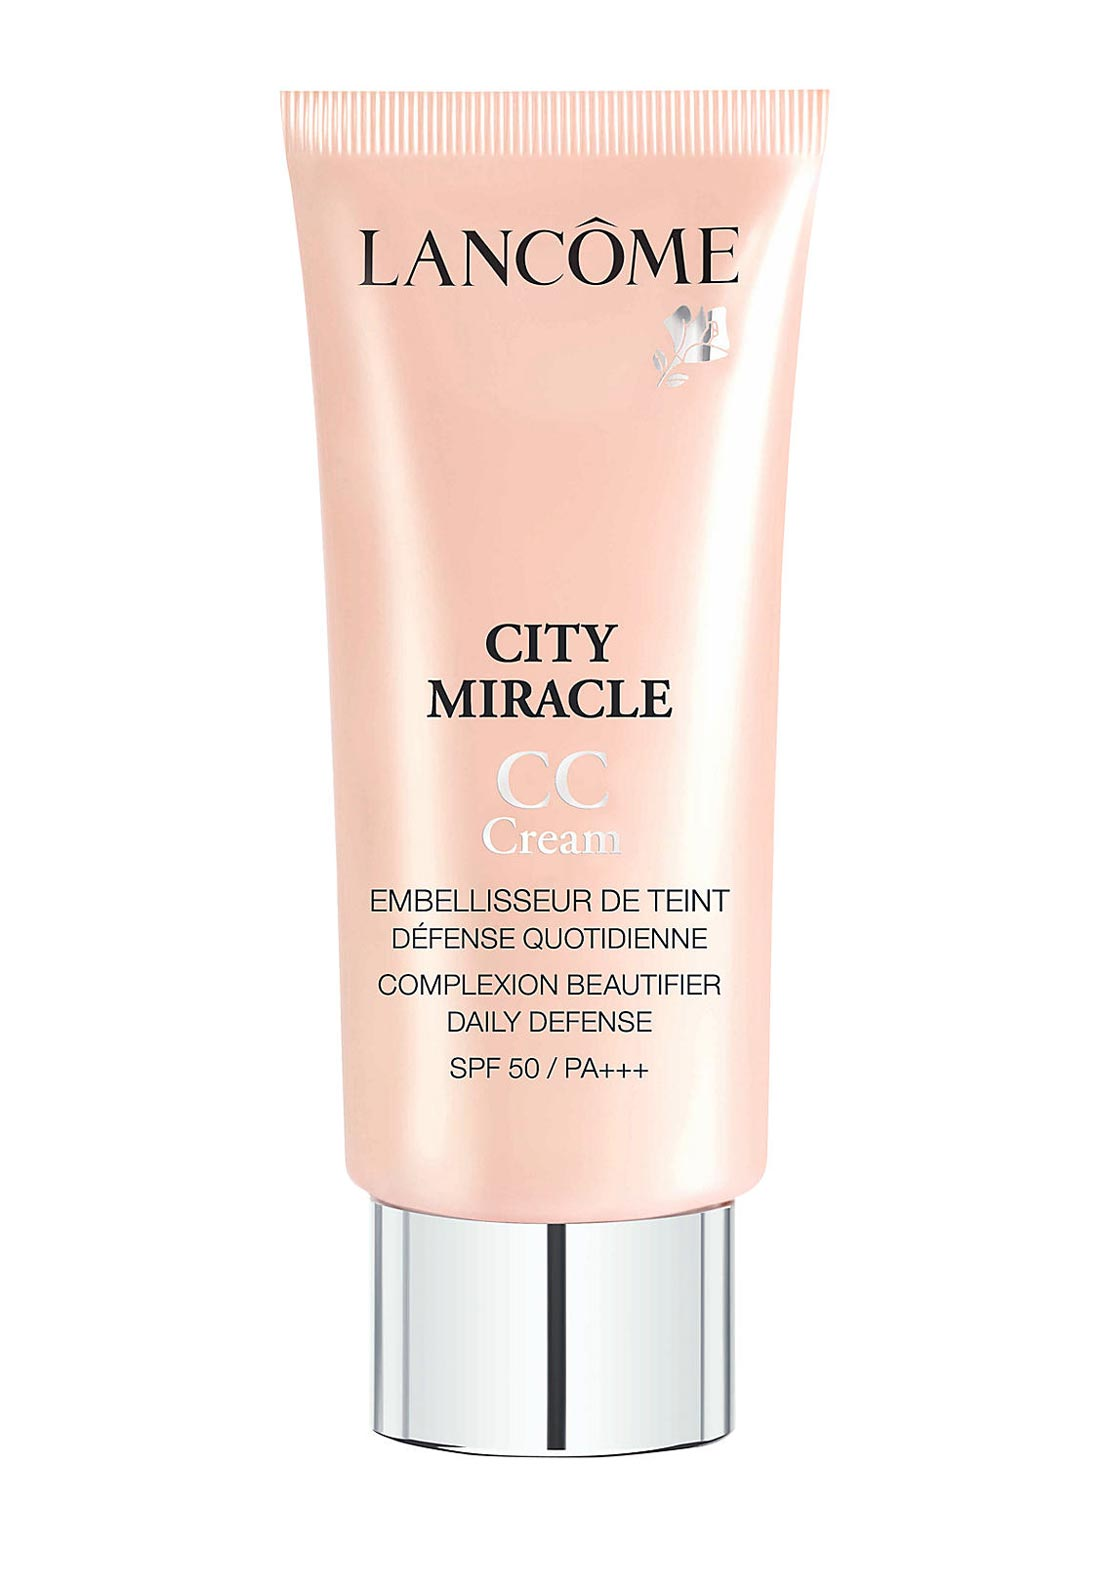 Lancome City Miracle CC Cream, 03 Beige Aurore by Lancome